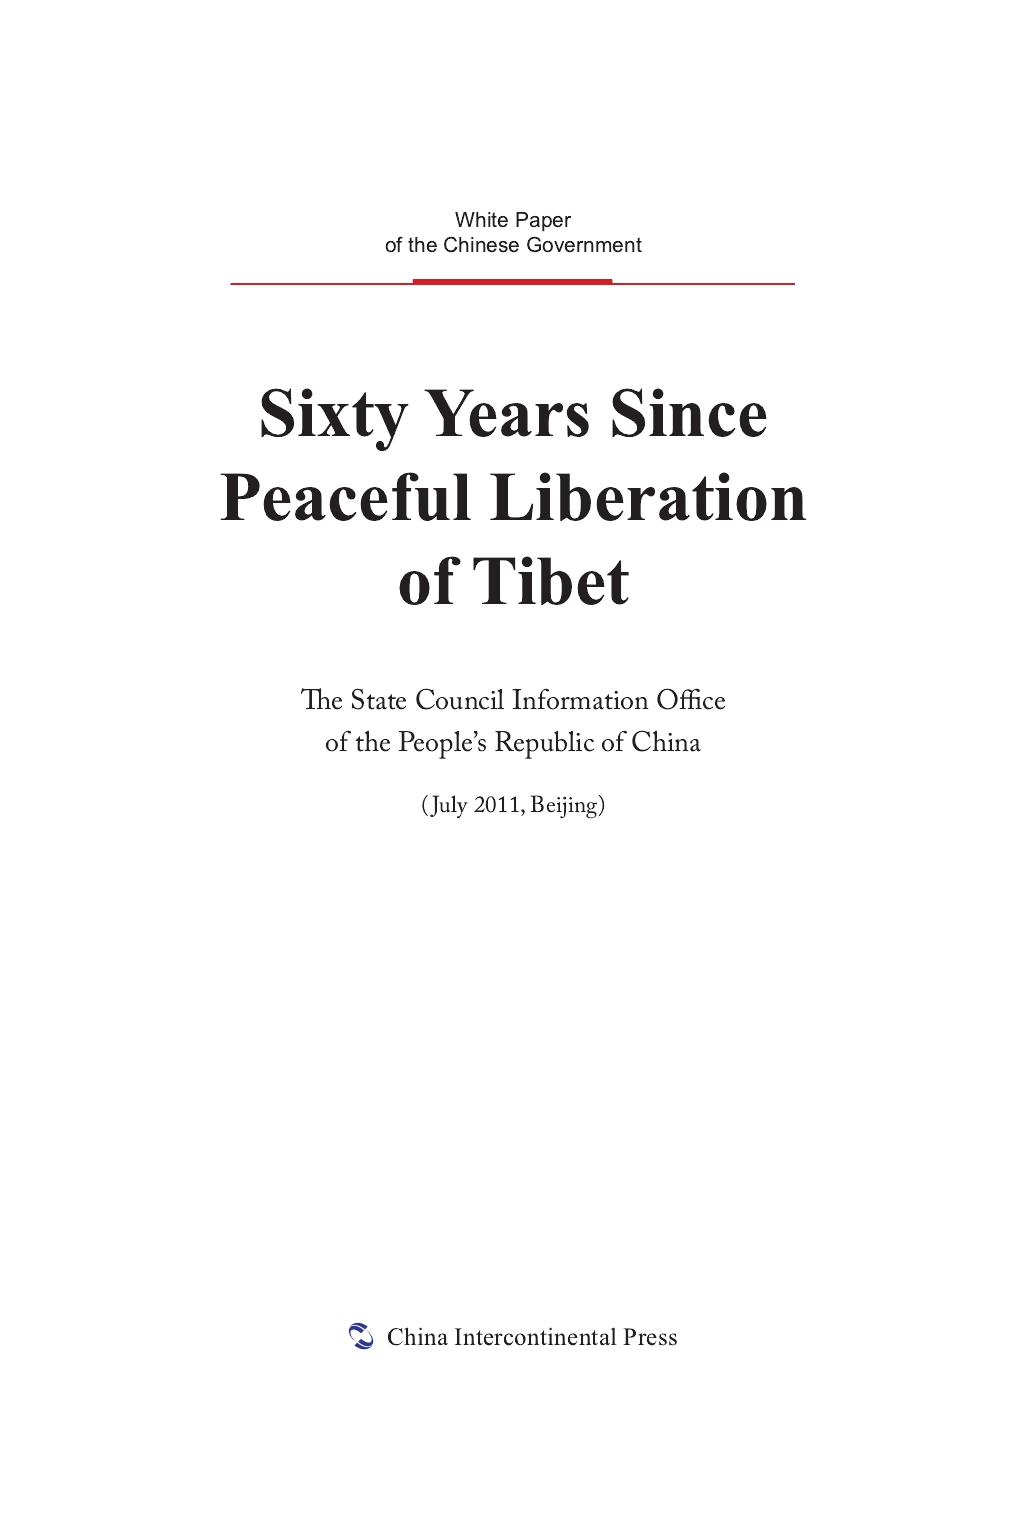 Sixty Years Since Peaceful Liberation of Tibet